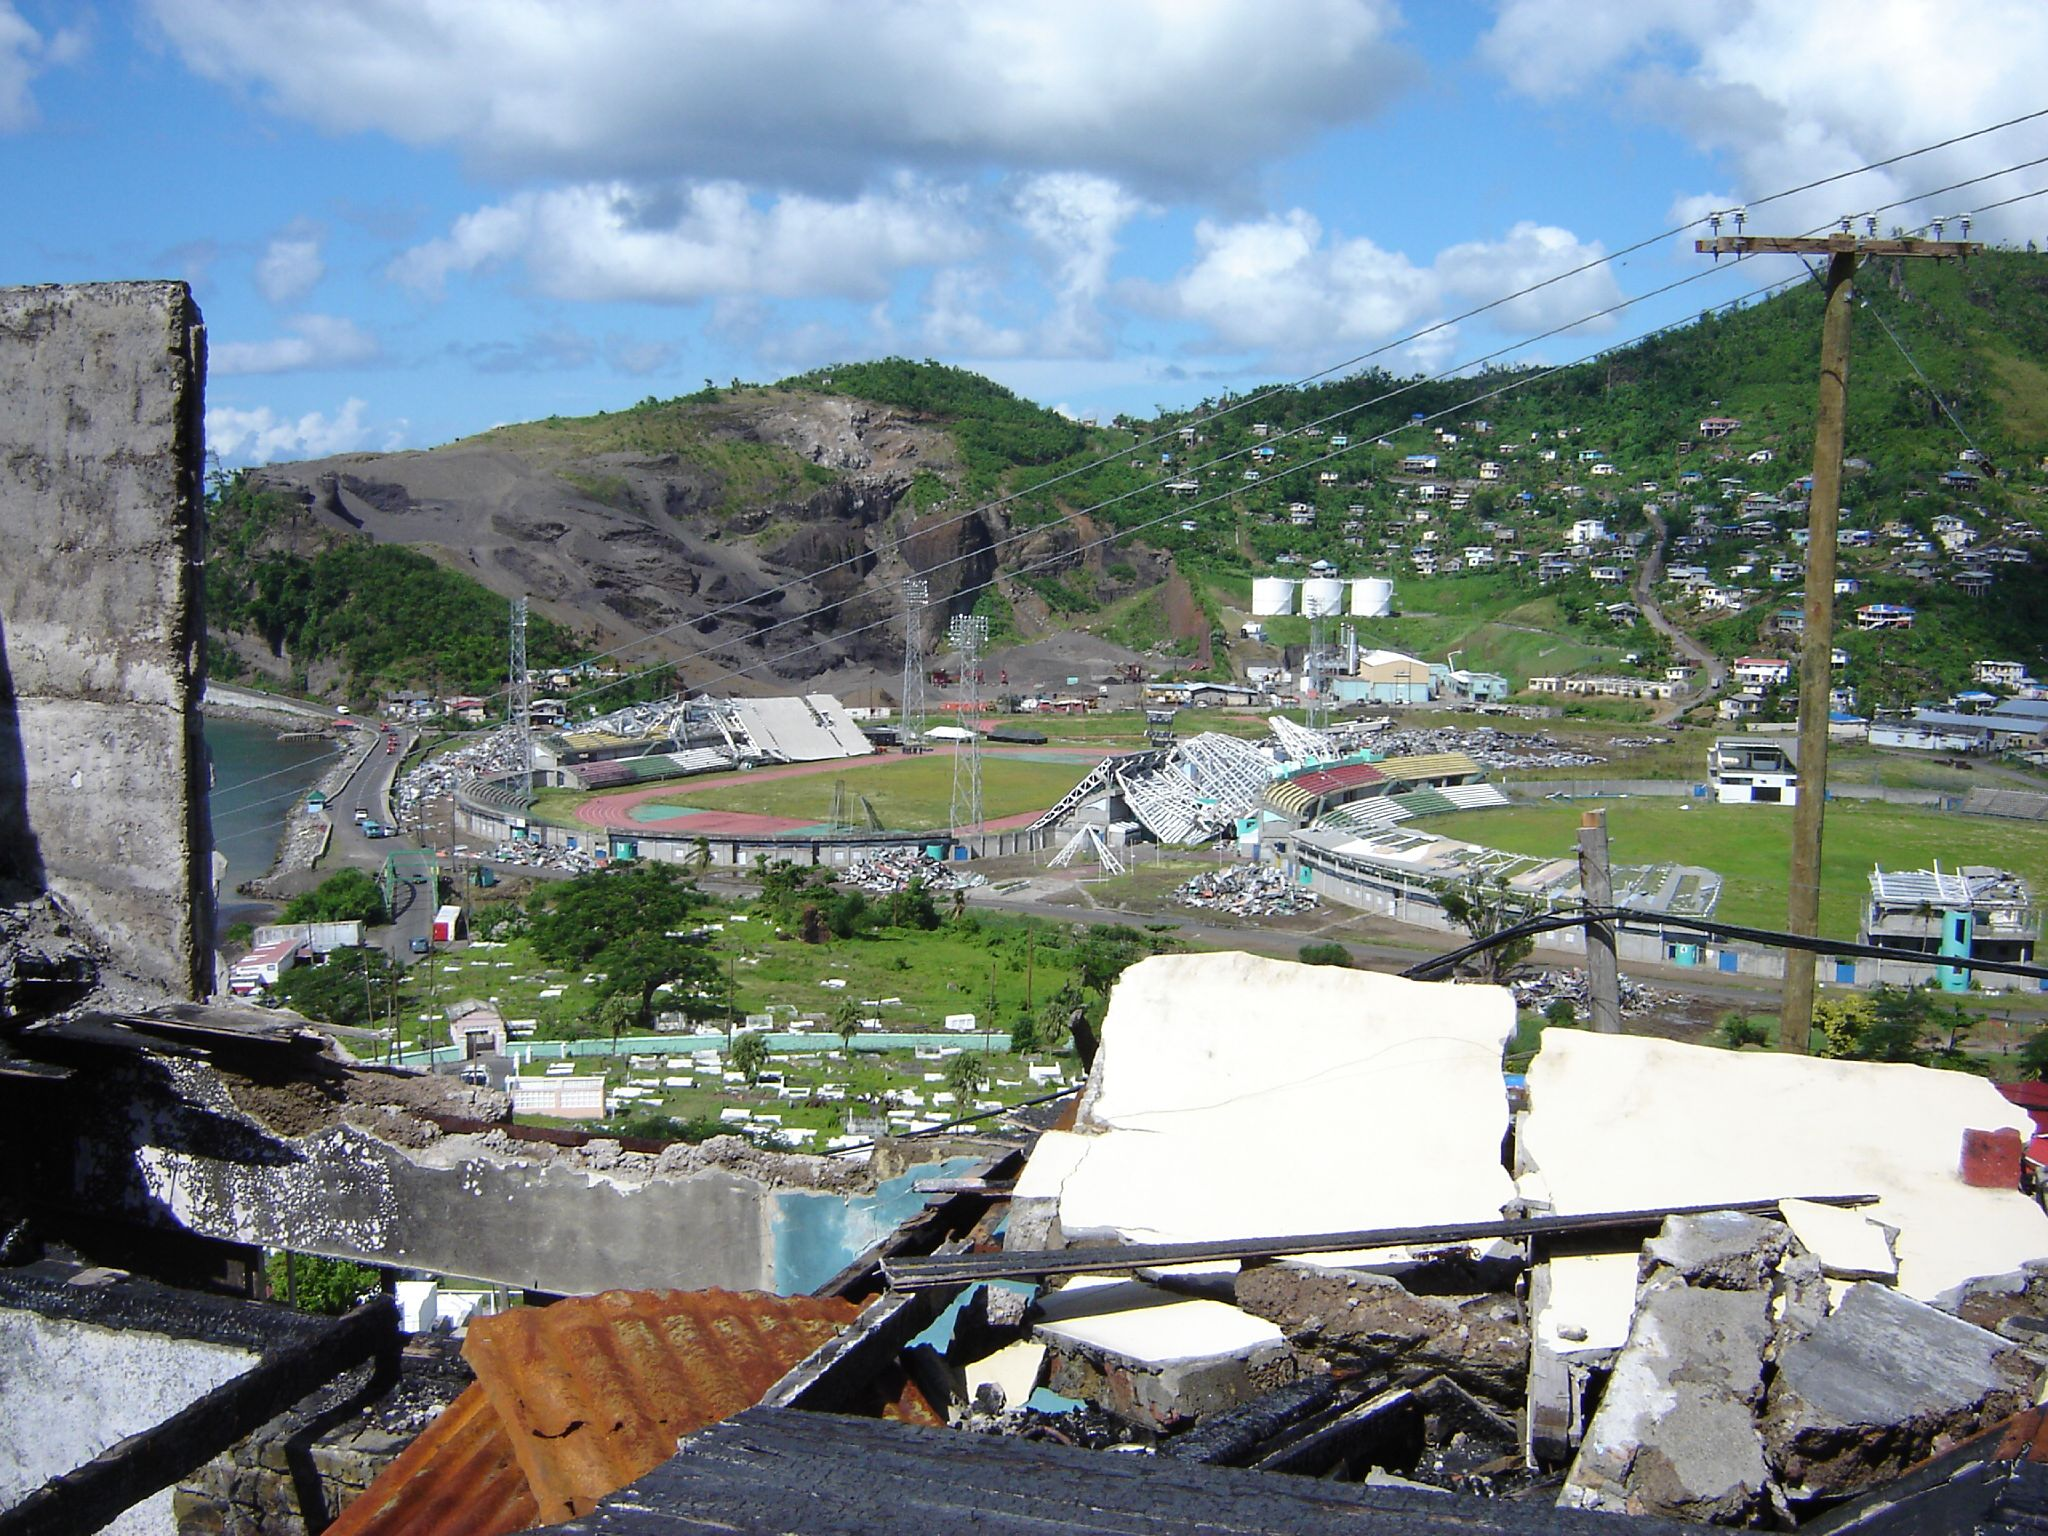 File:Hurricane Ivan Grenada damage.jpg - Wikipedia, the free ...